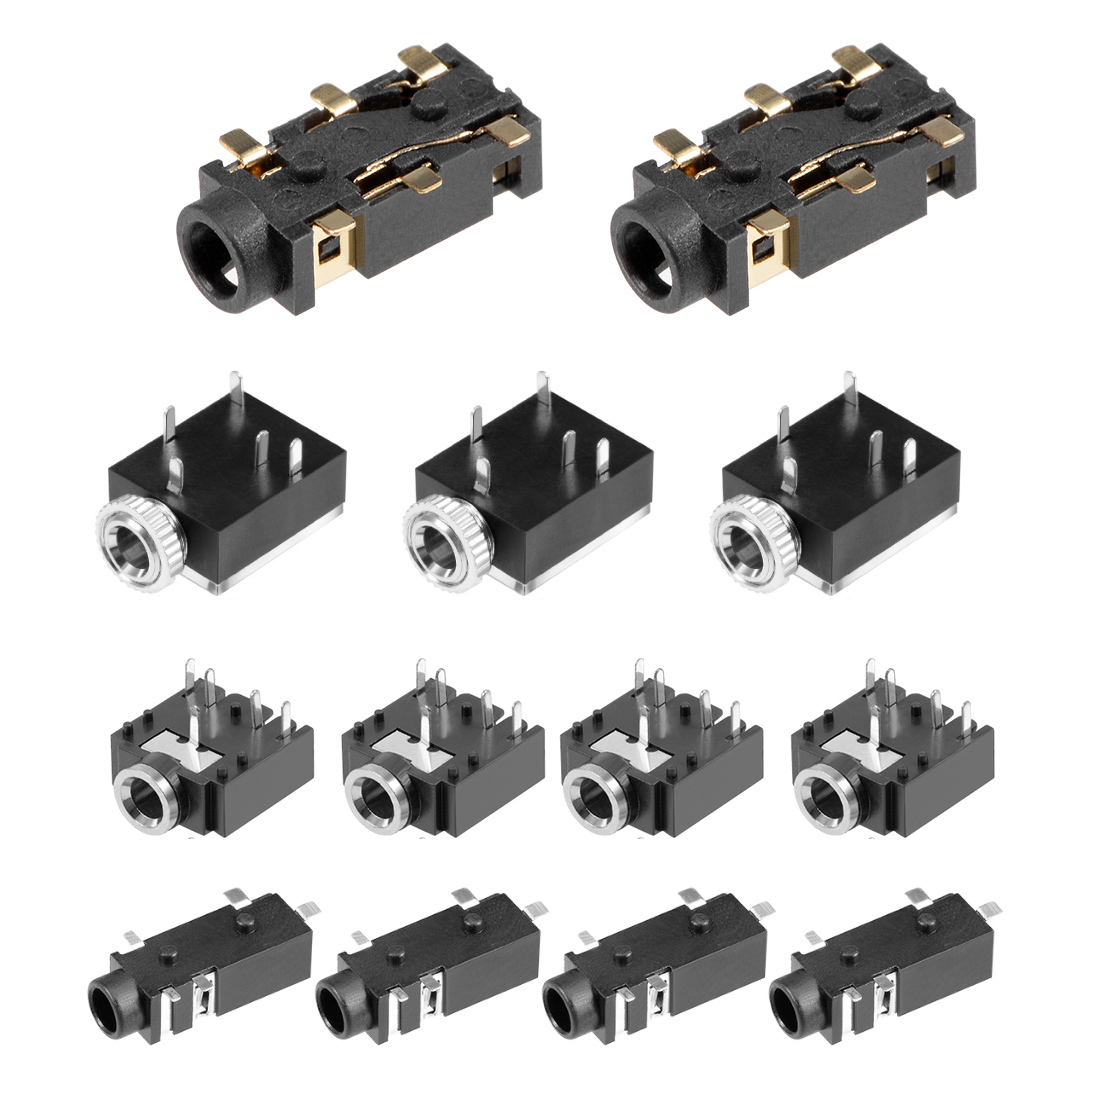 uxcell <font><b>4</b></font>/10/20/50/100Pcs Socket Headphone Stereo <font><b>Jack</b></font> PCB Mount 2.<font><b>5</b></font>/<font><b>3</b></font>.5mm <font><b>3</b></font>/<font><b>4</b></font>/<font><b>5</b></font>/6 <font><b>Pin</b></font> Audio Video Connector Black image